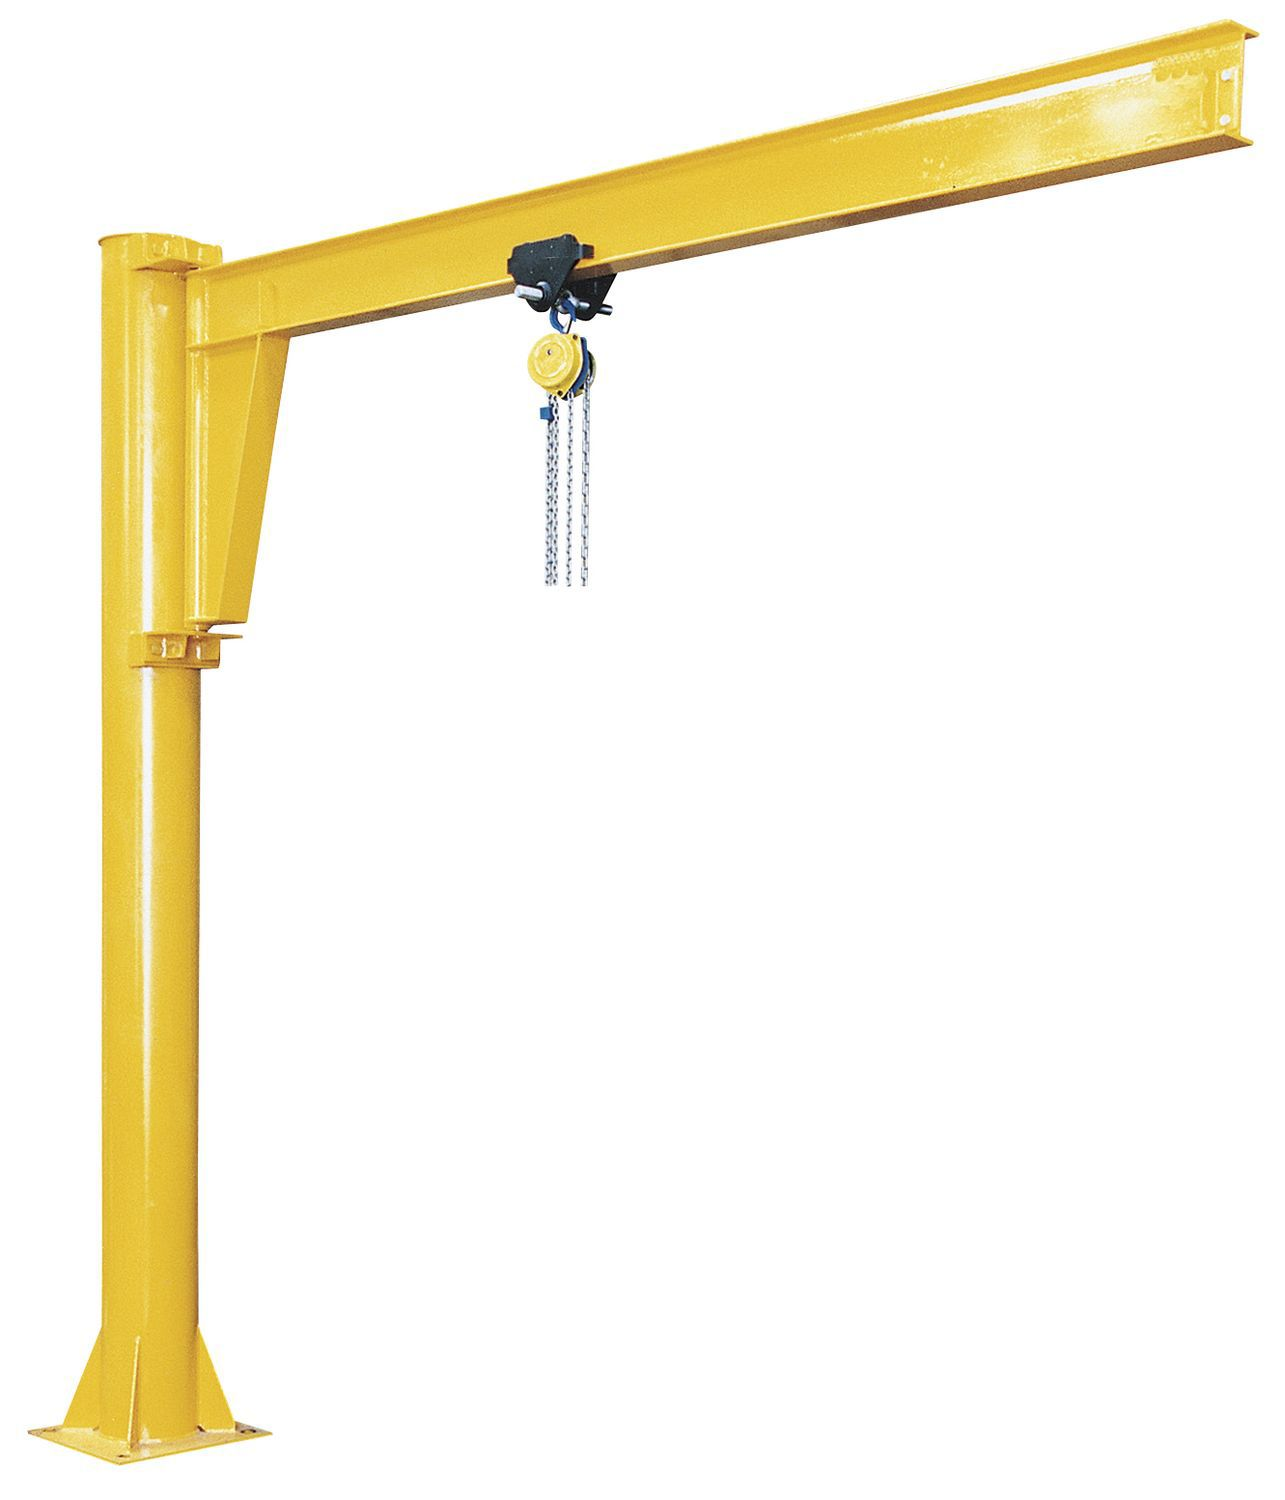 Garage Gator Installation Manual Jib Cranes Support And Carry Moveable Manual Or Electric Hoists